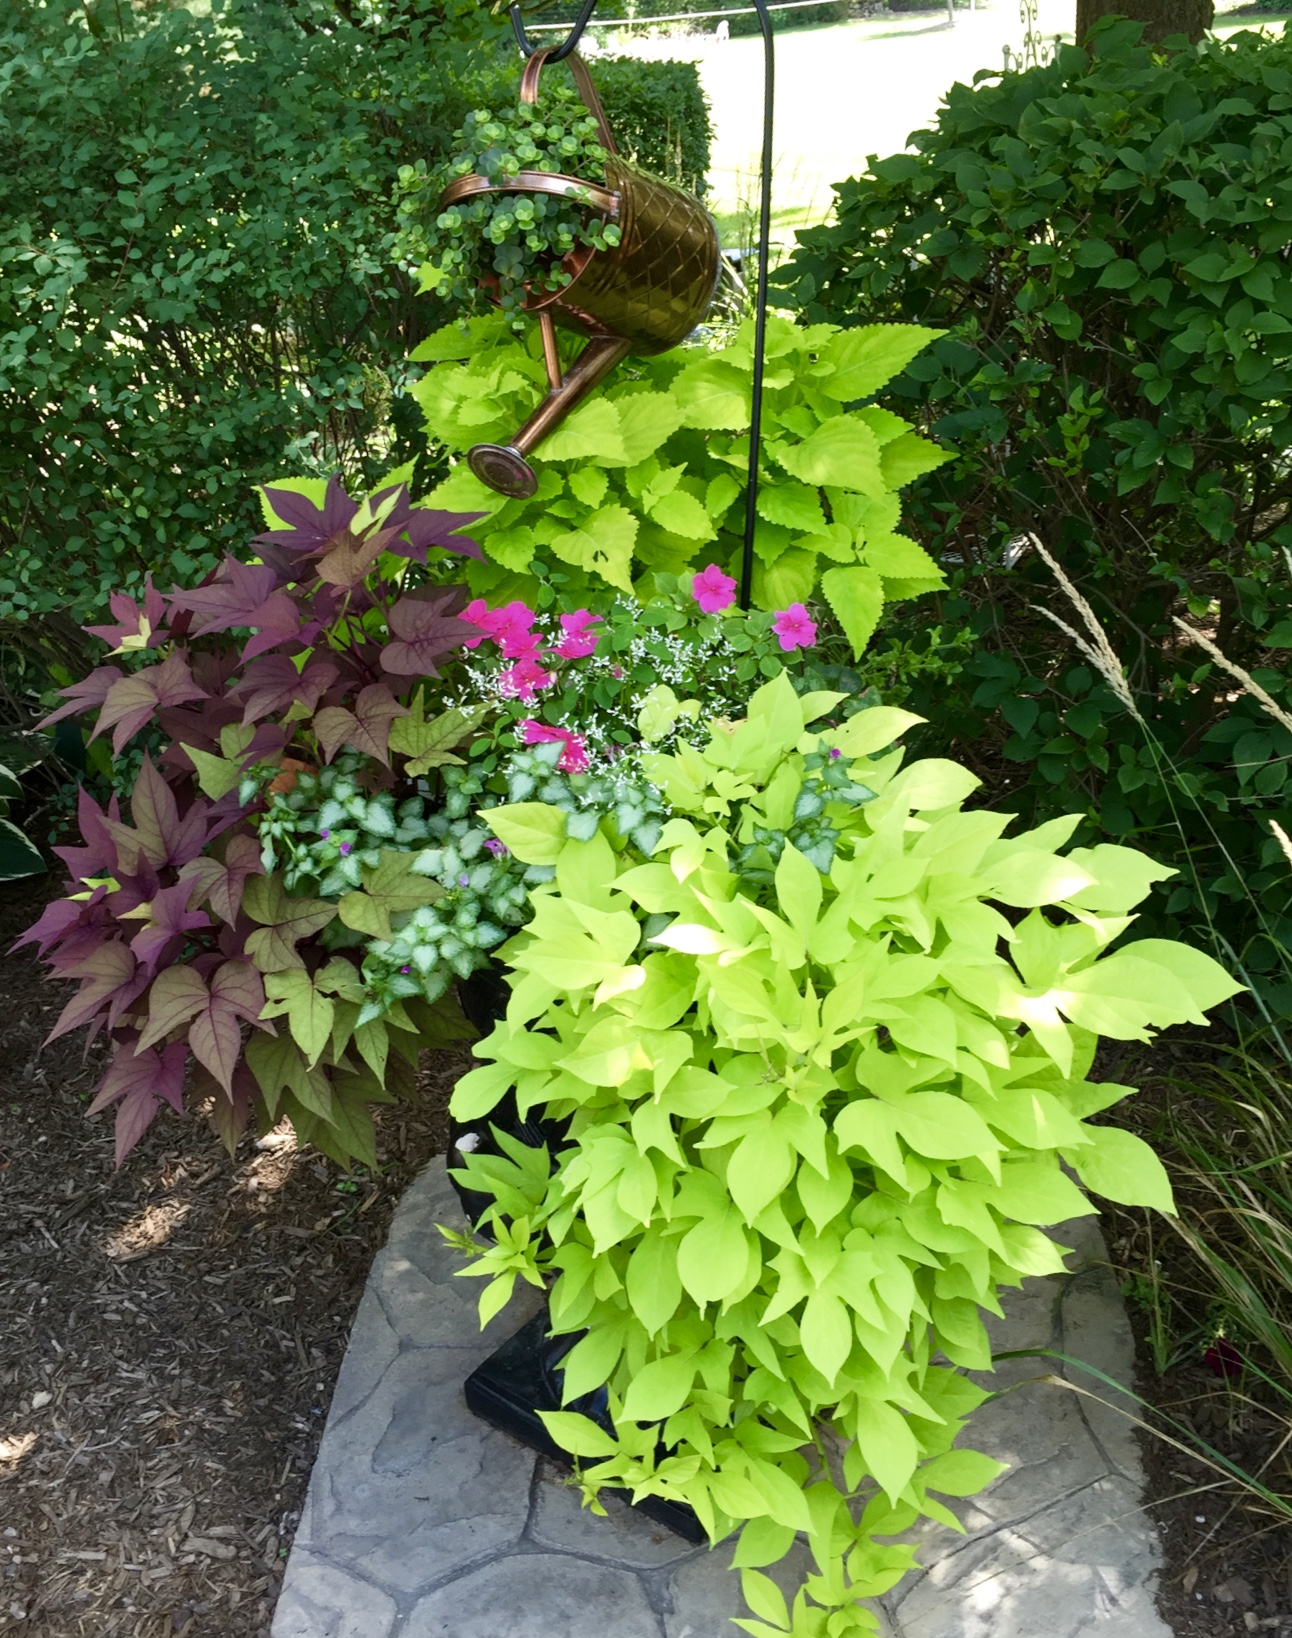 Purple and green potato vine spilling over the edge of the planter.